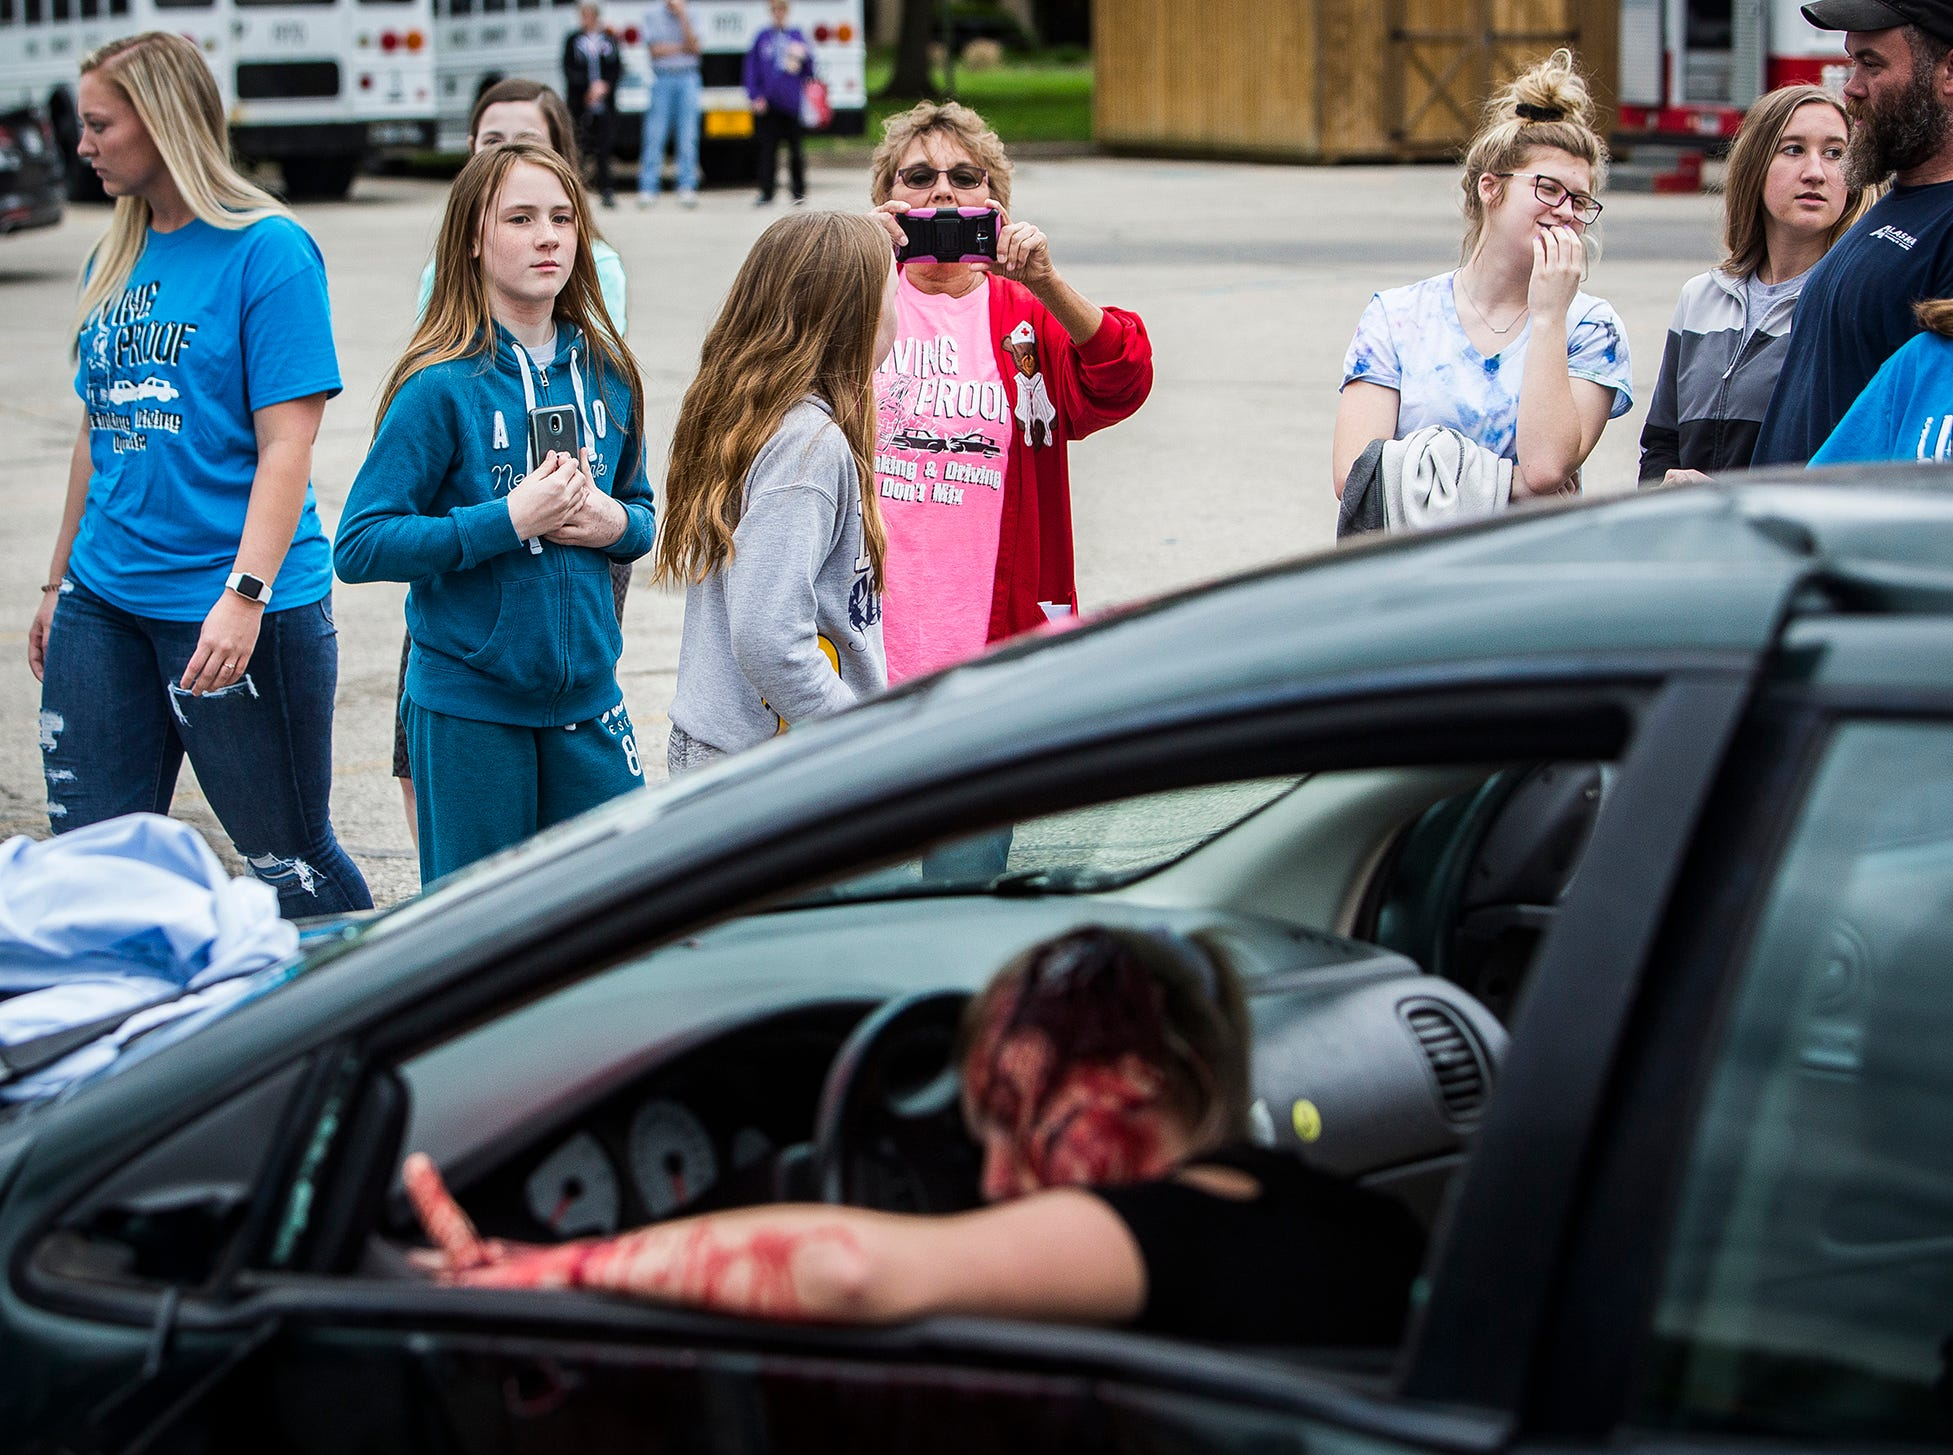 Attendees check out the fake blood and gore  during the 2019 Living Proof Crash Re-Enactment at Central Wednesday. The event seeks to raise awareness of the dangers of driving while intoxicated with re-enactments of crashes, court scenes and funerals. Makeup artist Brian Blair donated time and material for this year's Living Proof.